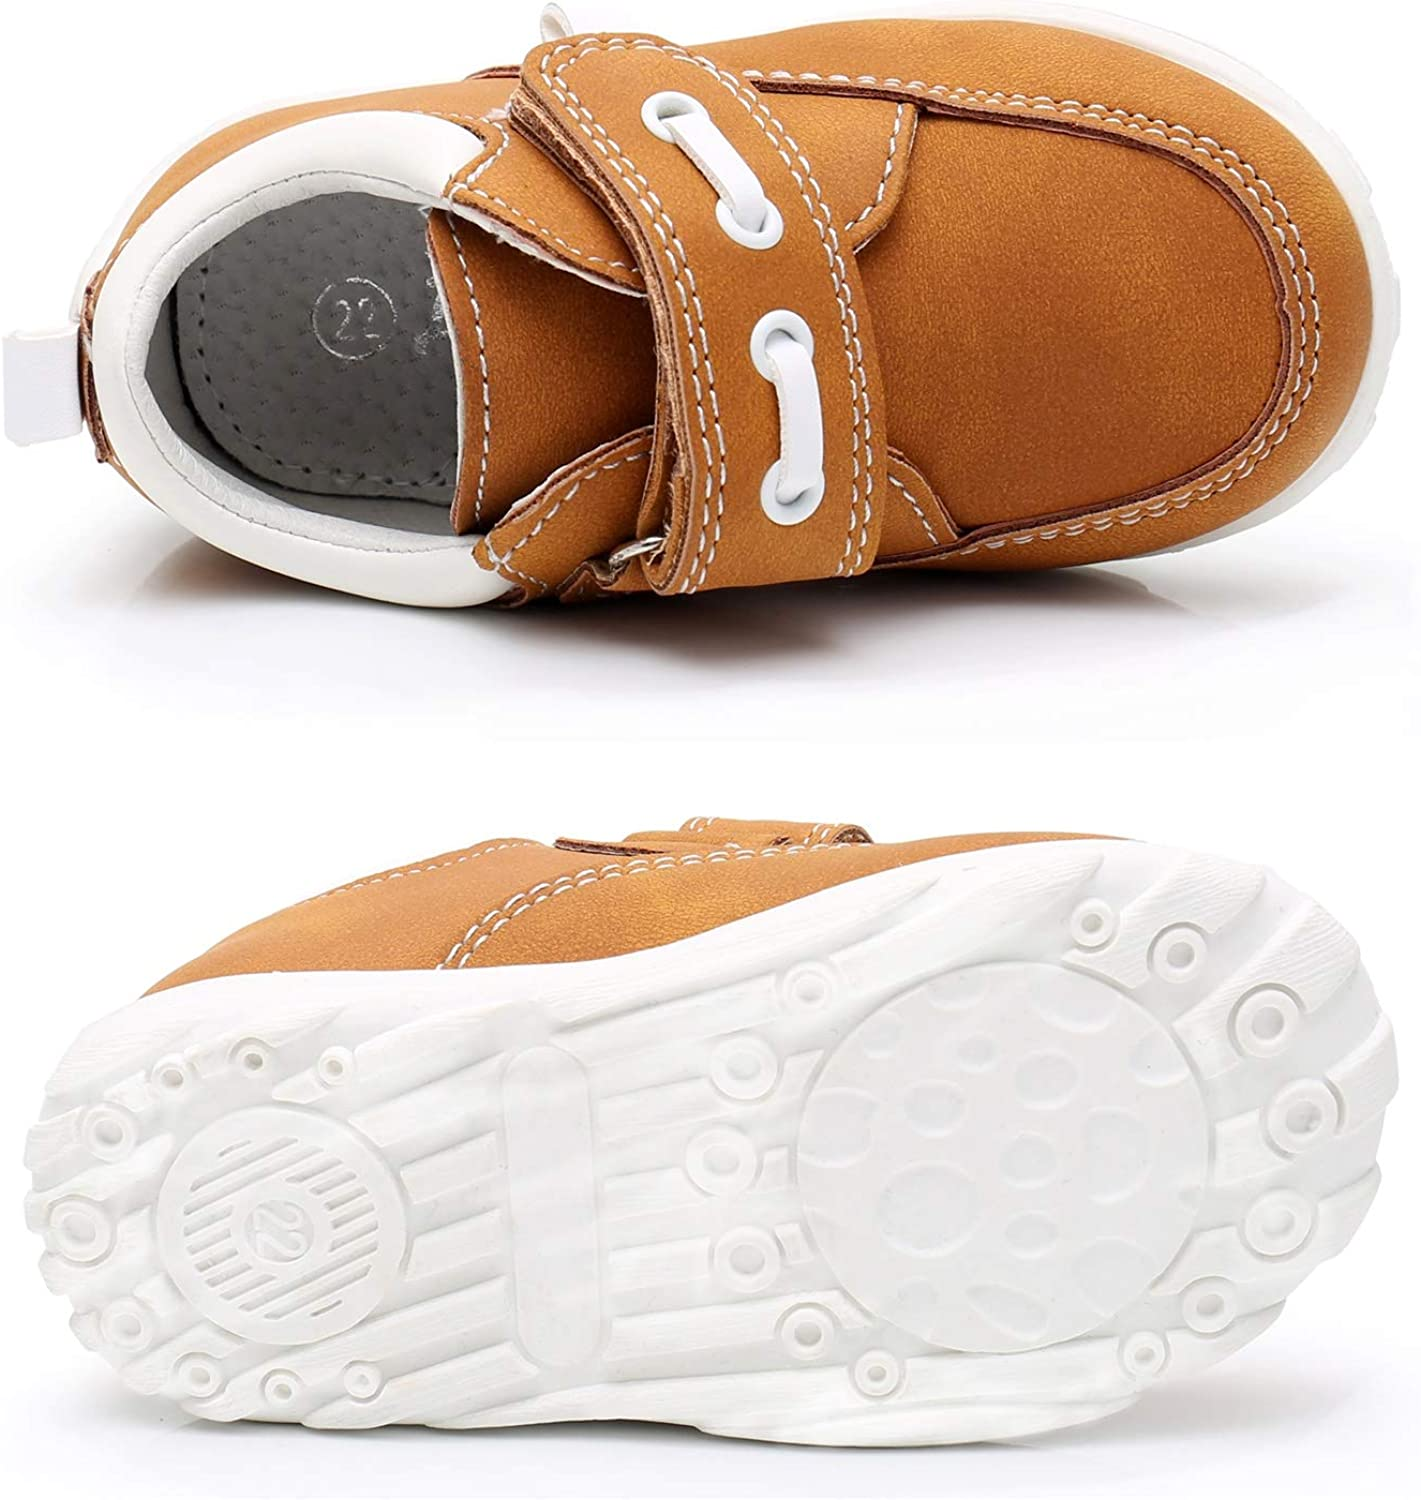 Ahannie Boys Hook /& Loop Loafer Shoes,Toddler//Little Kids Casual Comfort Slip on Moccasin Driving Style Boat Shoe